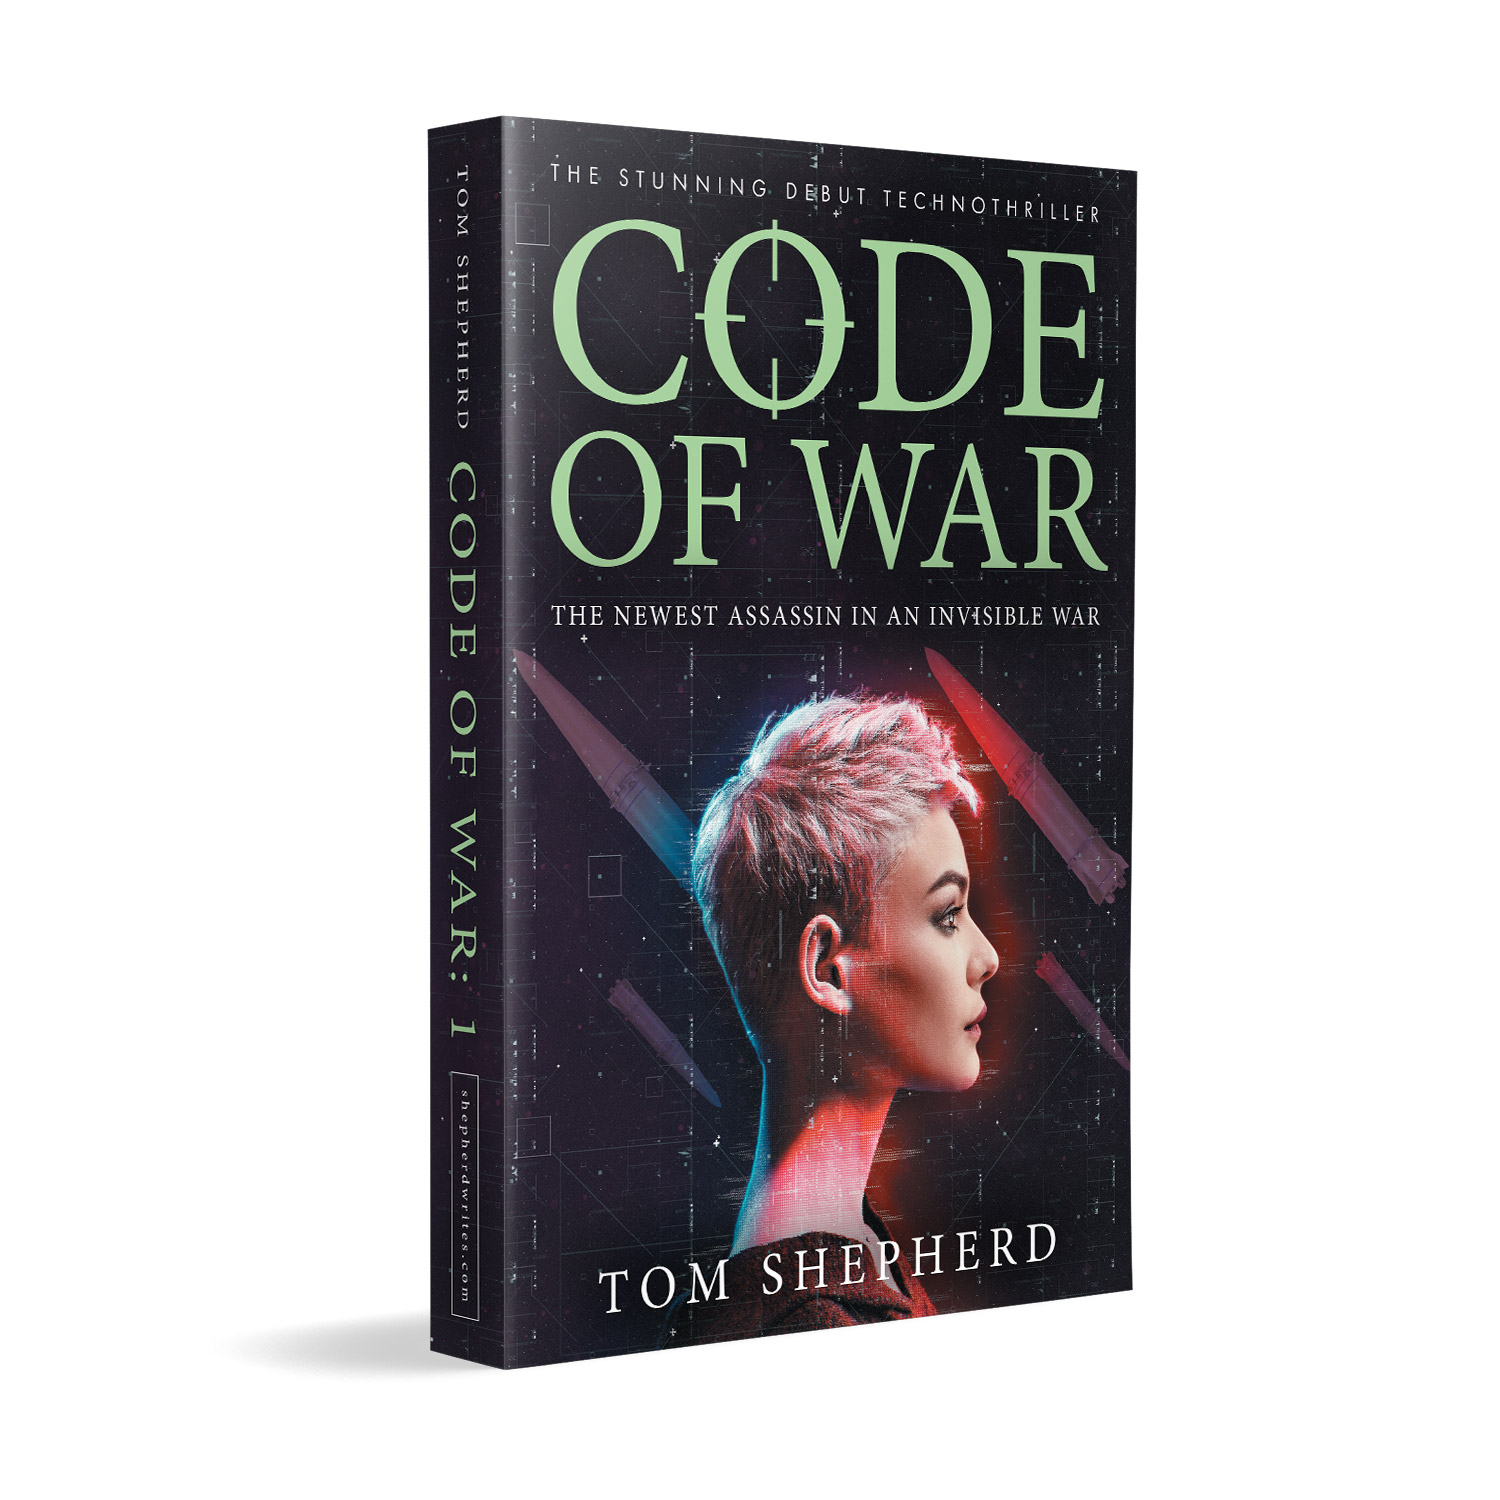 'Code of War' is a bleeding-edge, female-led, military technothriller. The author is Tom Shepherd. The book cover design and interior formatting are by Mark Thomas. To learn more about what Mark could do for your book, please visit coverness.com.